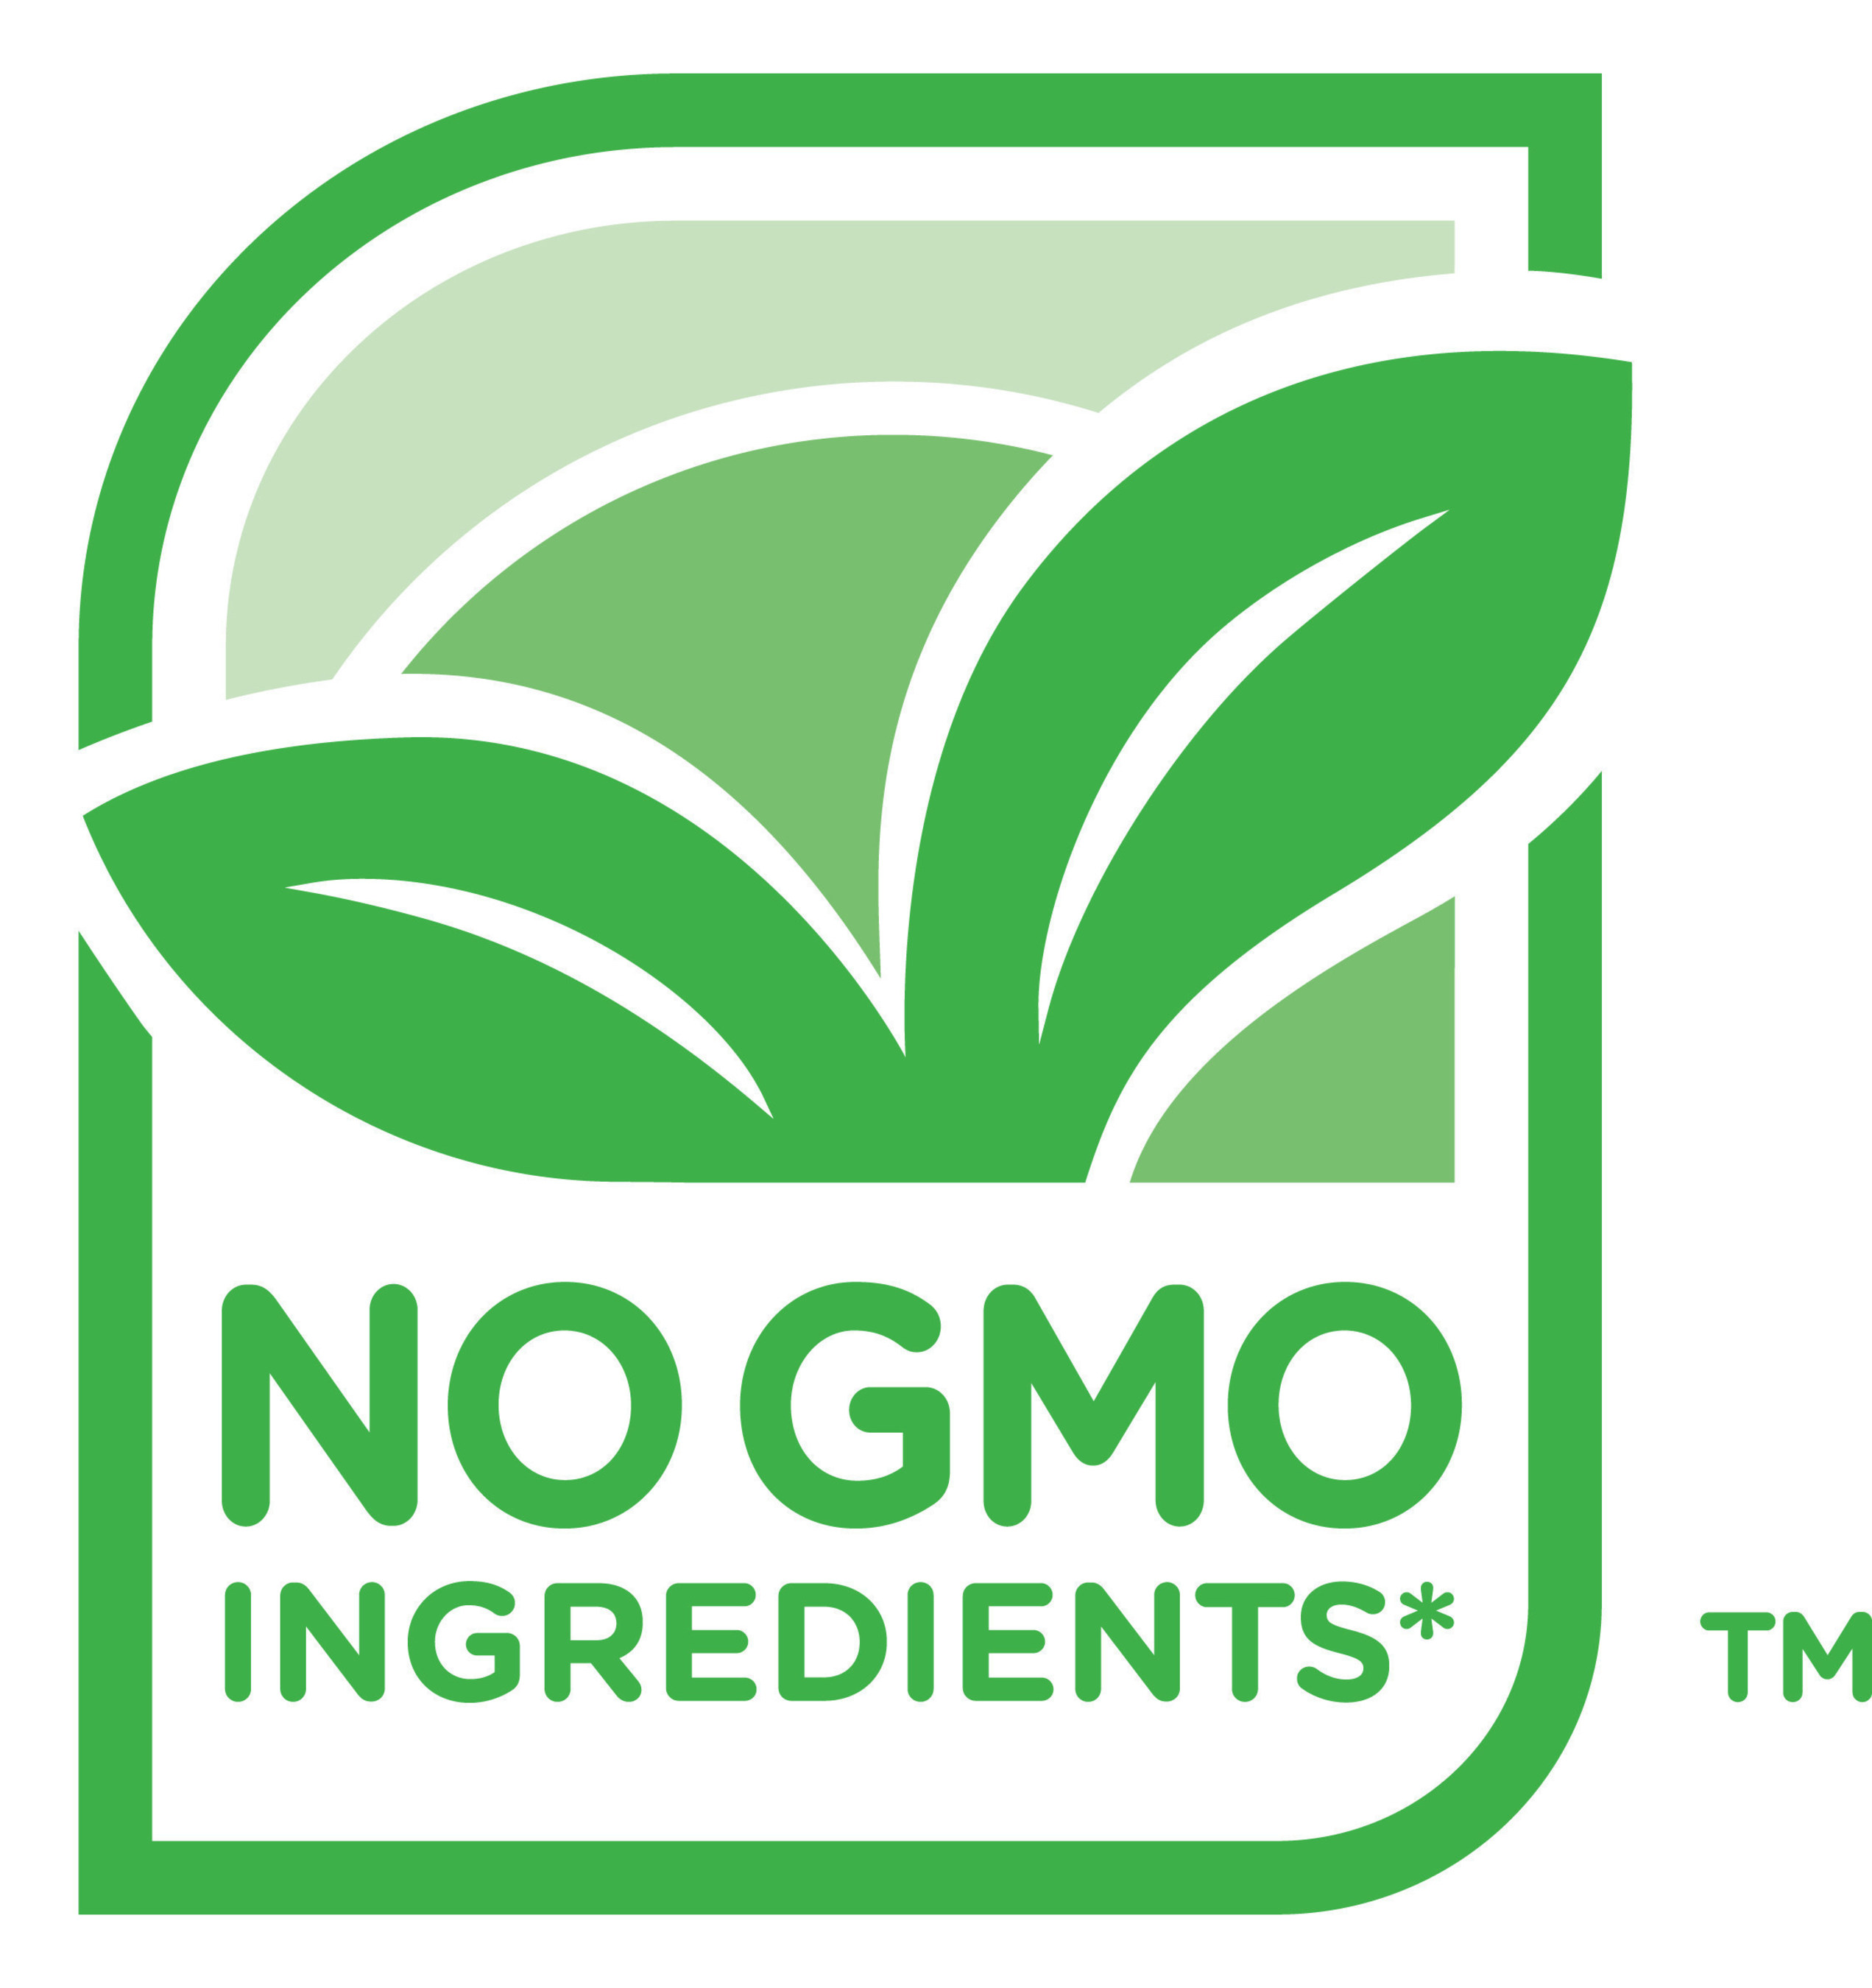 *SGS VERIFIED THE NESTLE PROCESS FOR MANUFACTURING WITH NO GMO INGREDIENTS sgs.com/no-gmo